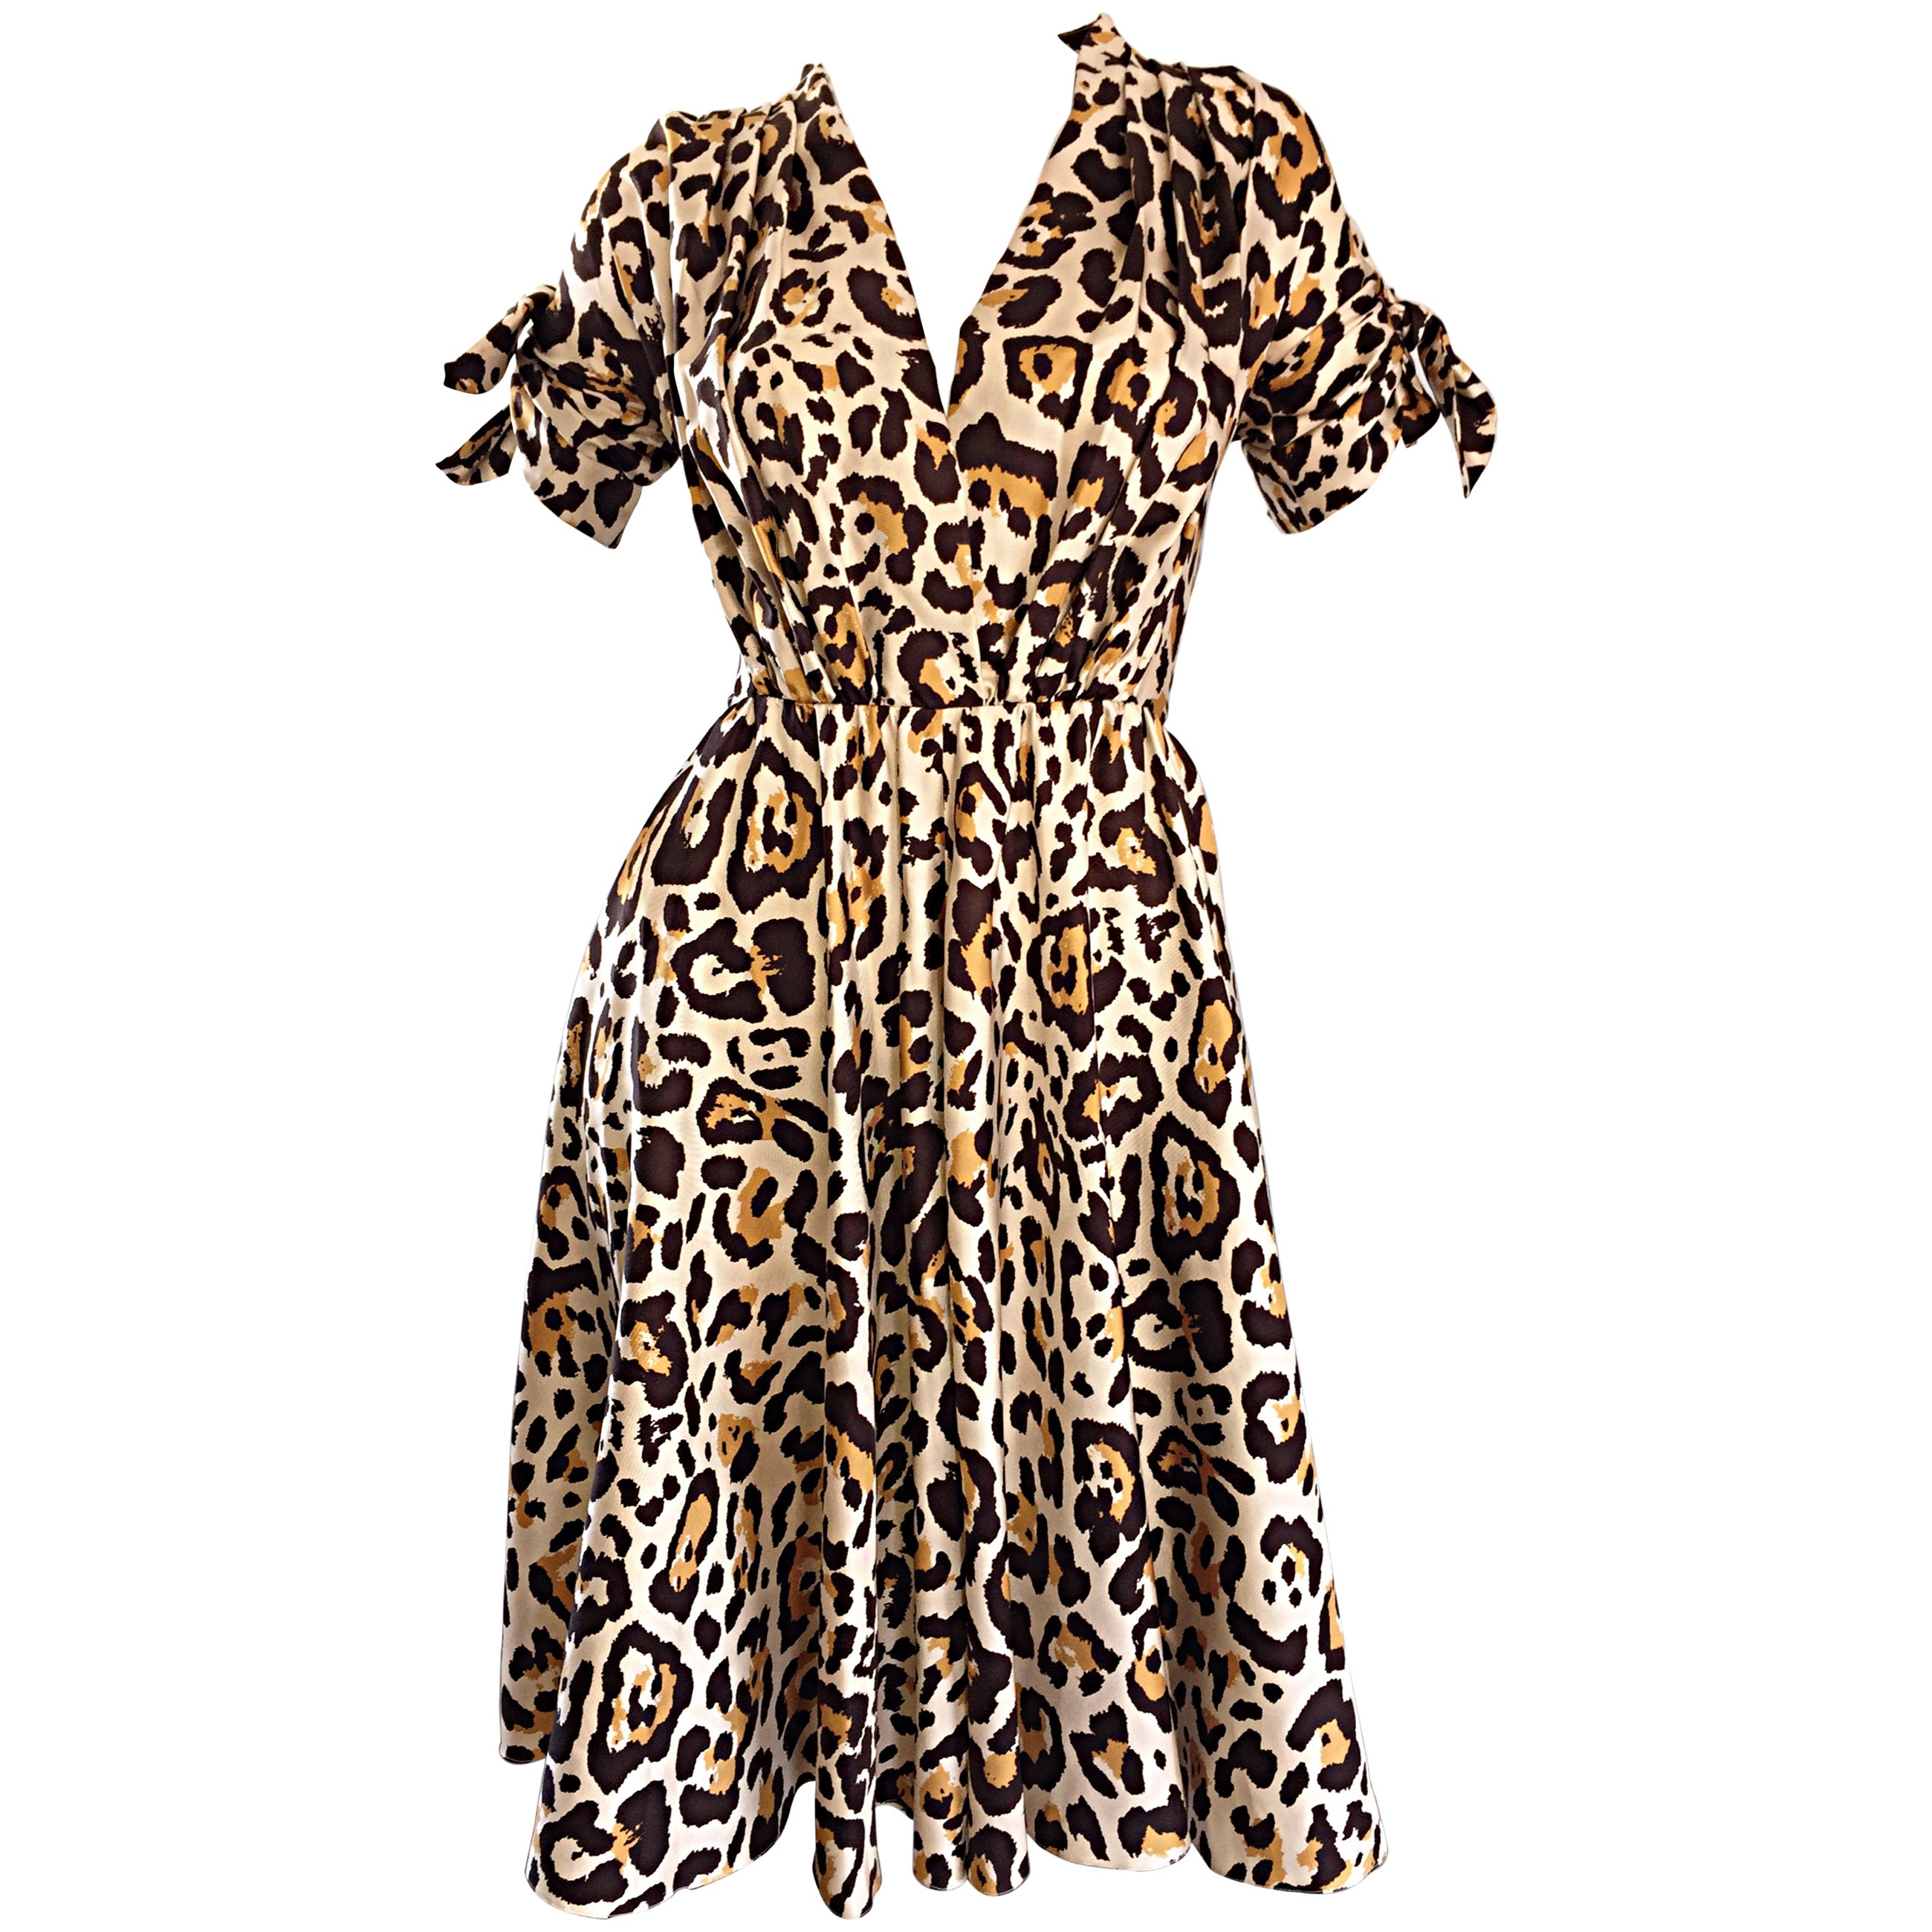 John Galliano Christian Dior Size 10 Leopard Cheetah 1940s Style Silk Dress